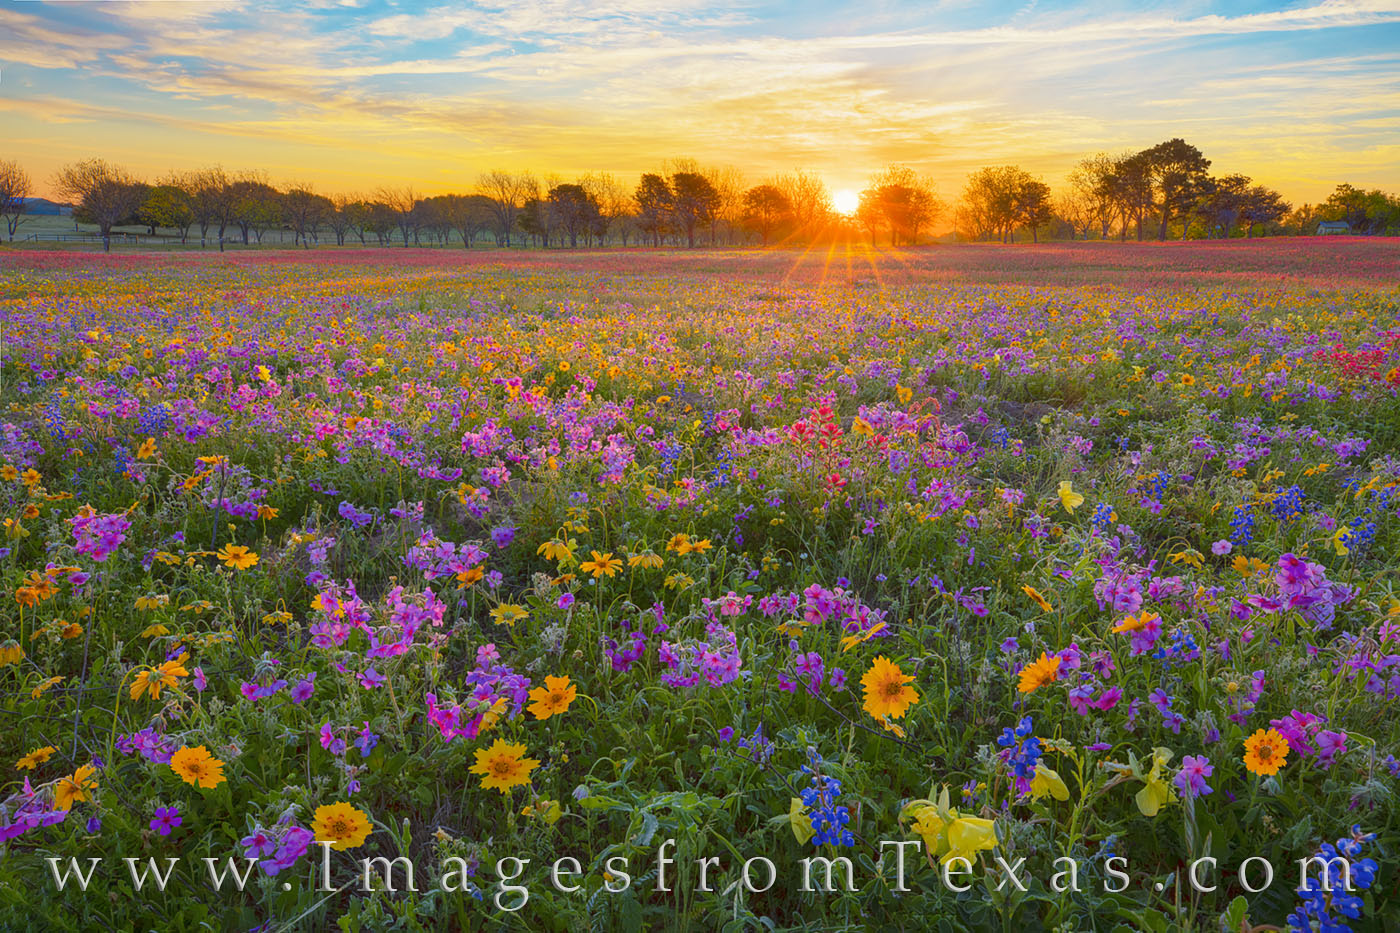 Wildflowers, new berlin, spring, april, red, blue, yellow, gold, purple, phlox, bluebonnets, coreopsis, groundsel, paintbrush, primrose, buttercups, private, sunrise, sunburst, photo